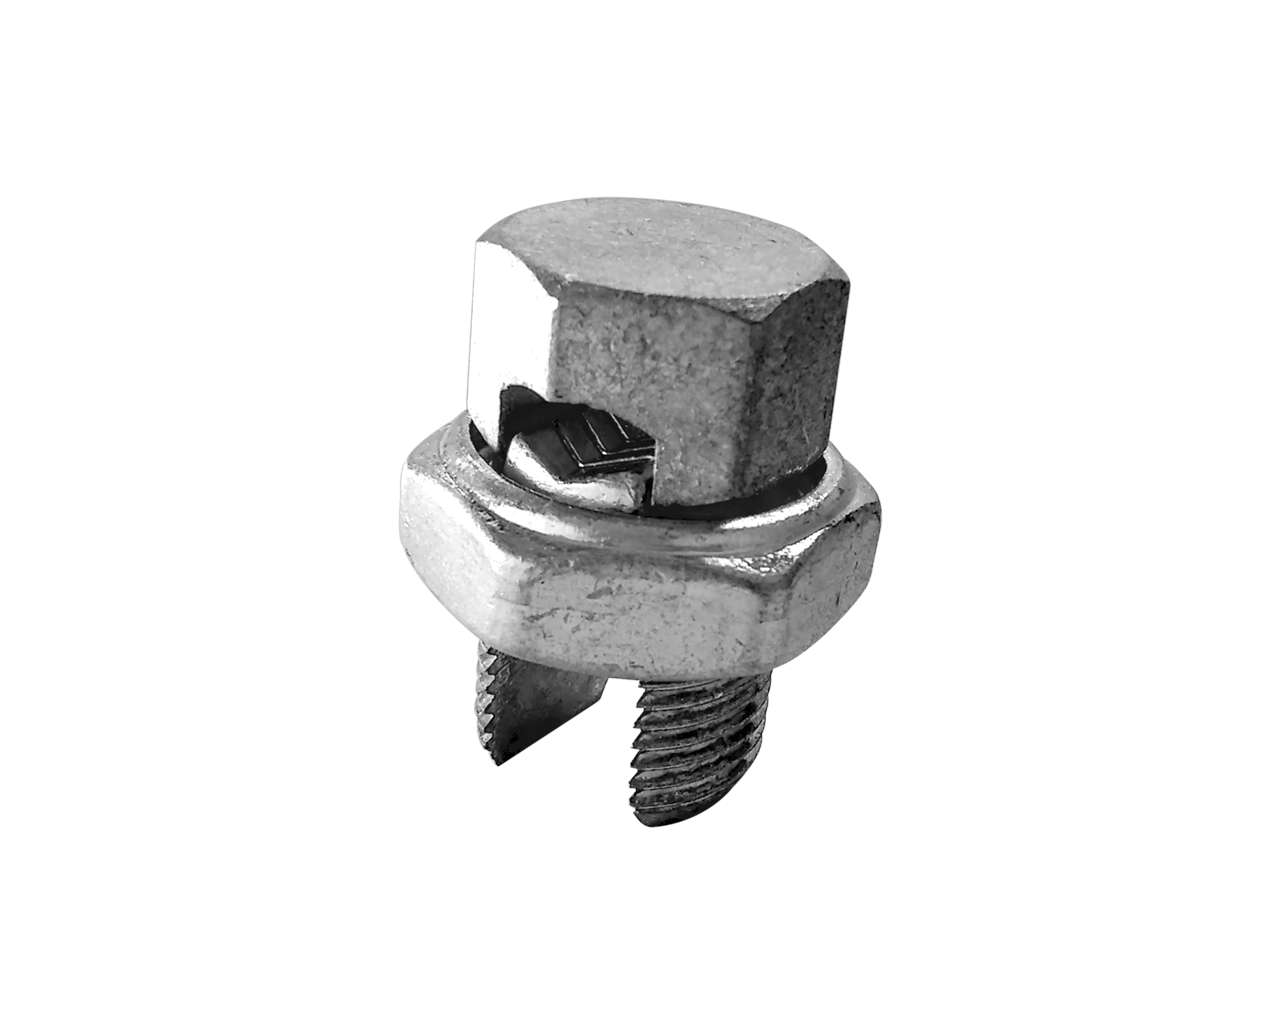 CONECTOR PARAFUSO FENDIDO MMMAGNET S/S-N 16MM2